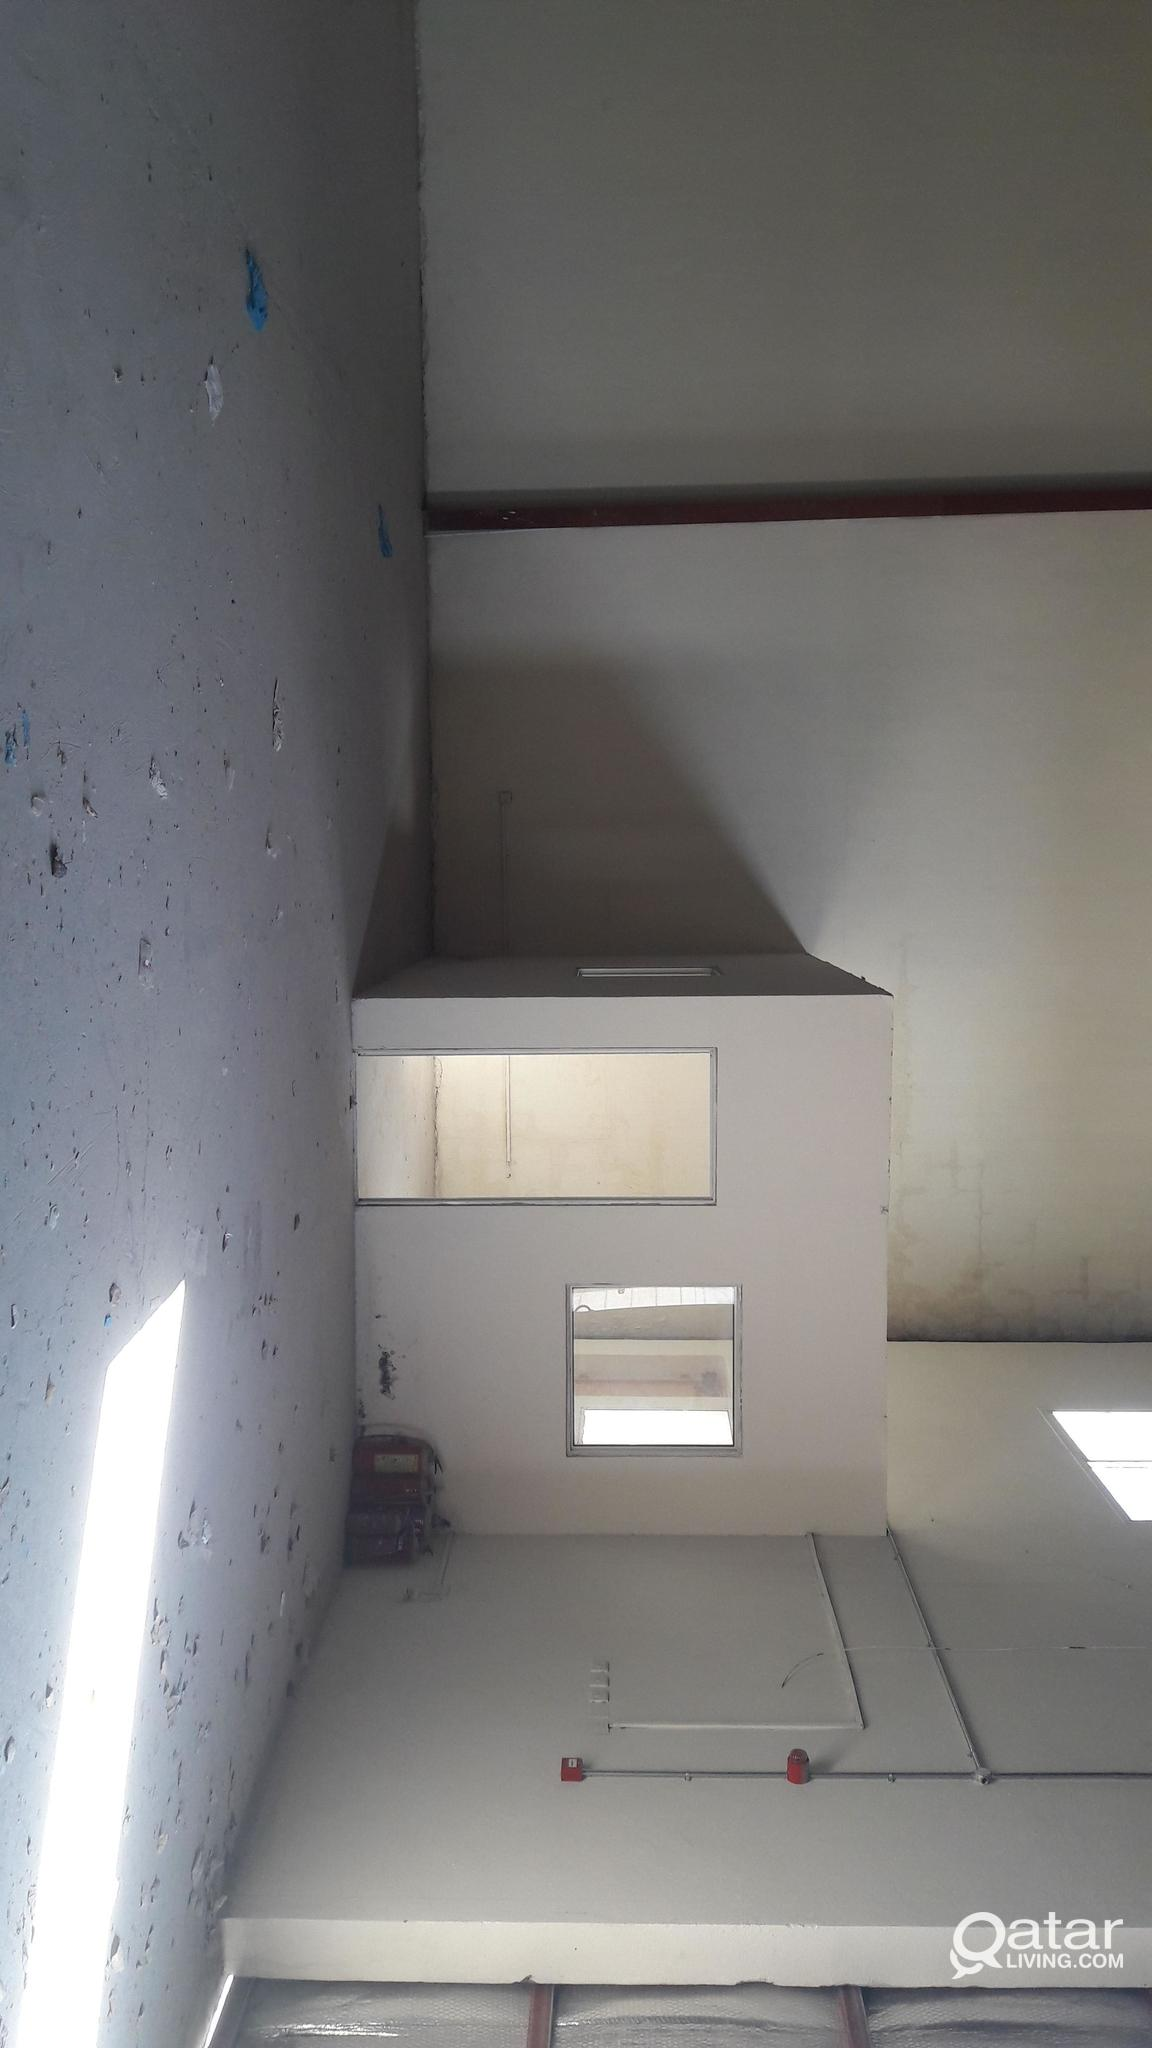 1000 sqmtr warehouse for rent at industrial area